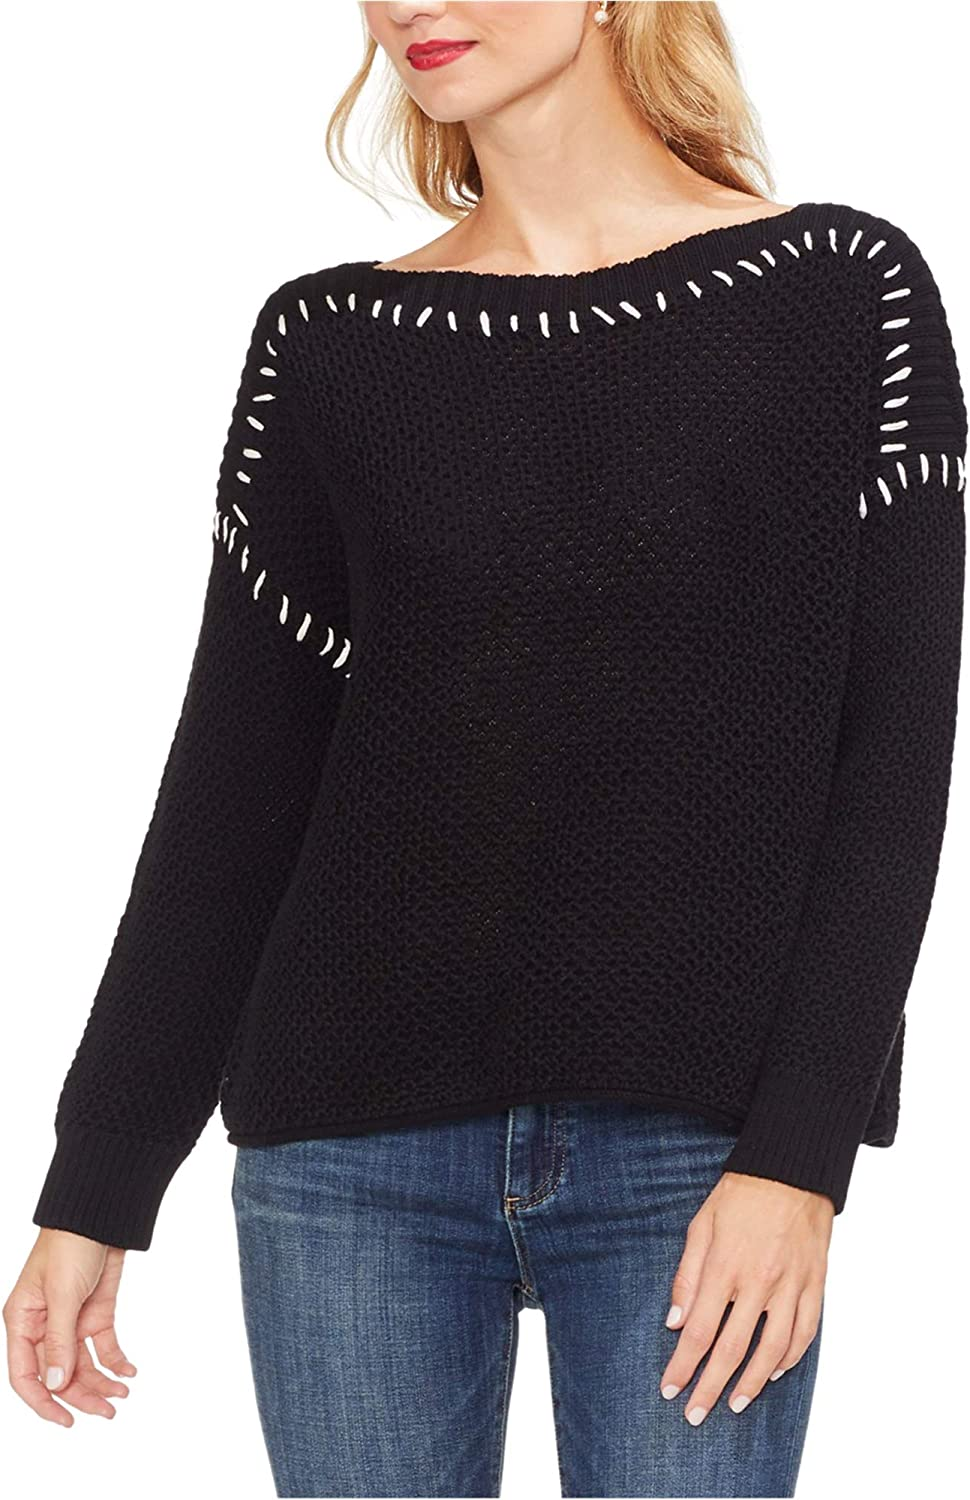 Vince Camuto Womens Contrast Stitching Pullover Sweater, Black, Medium